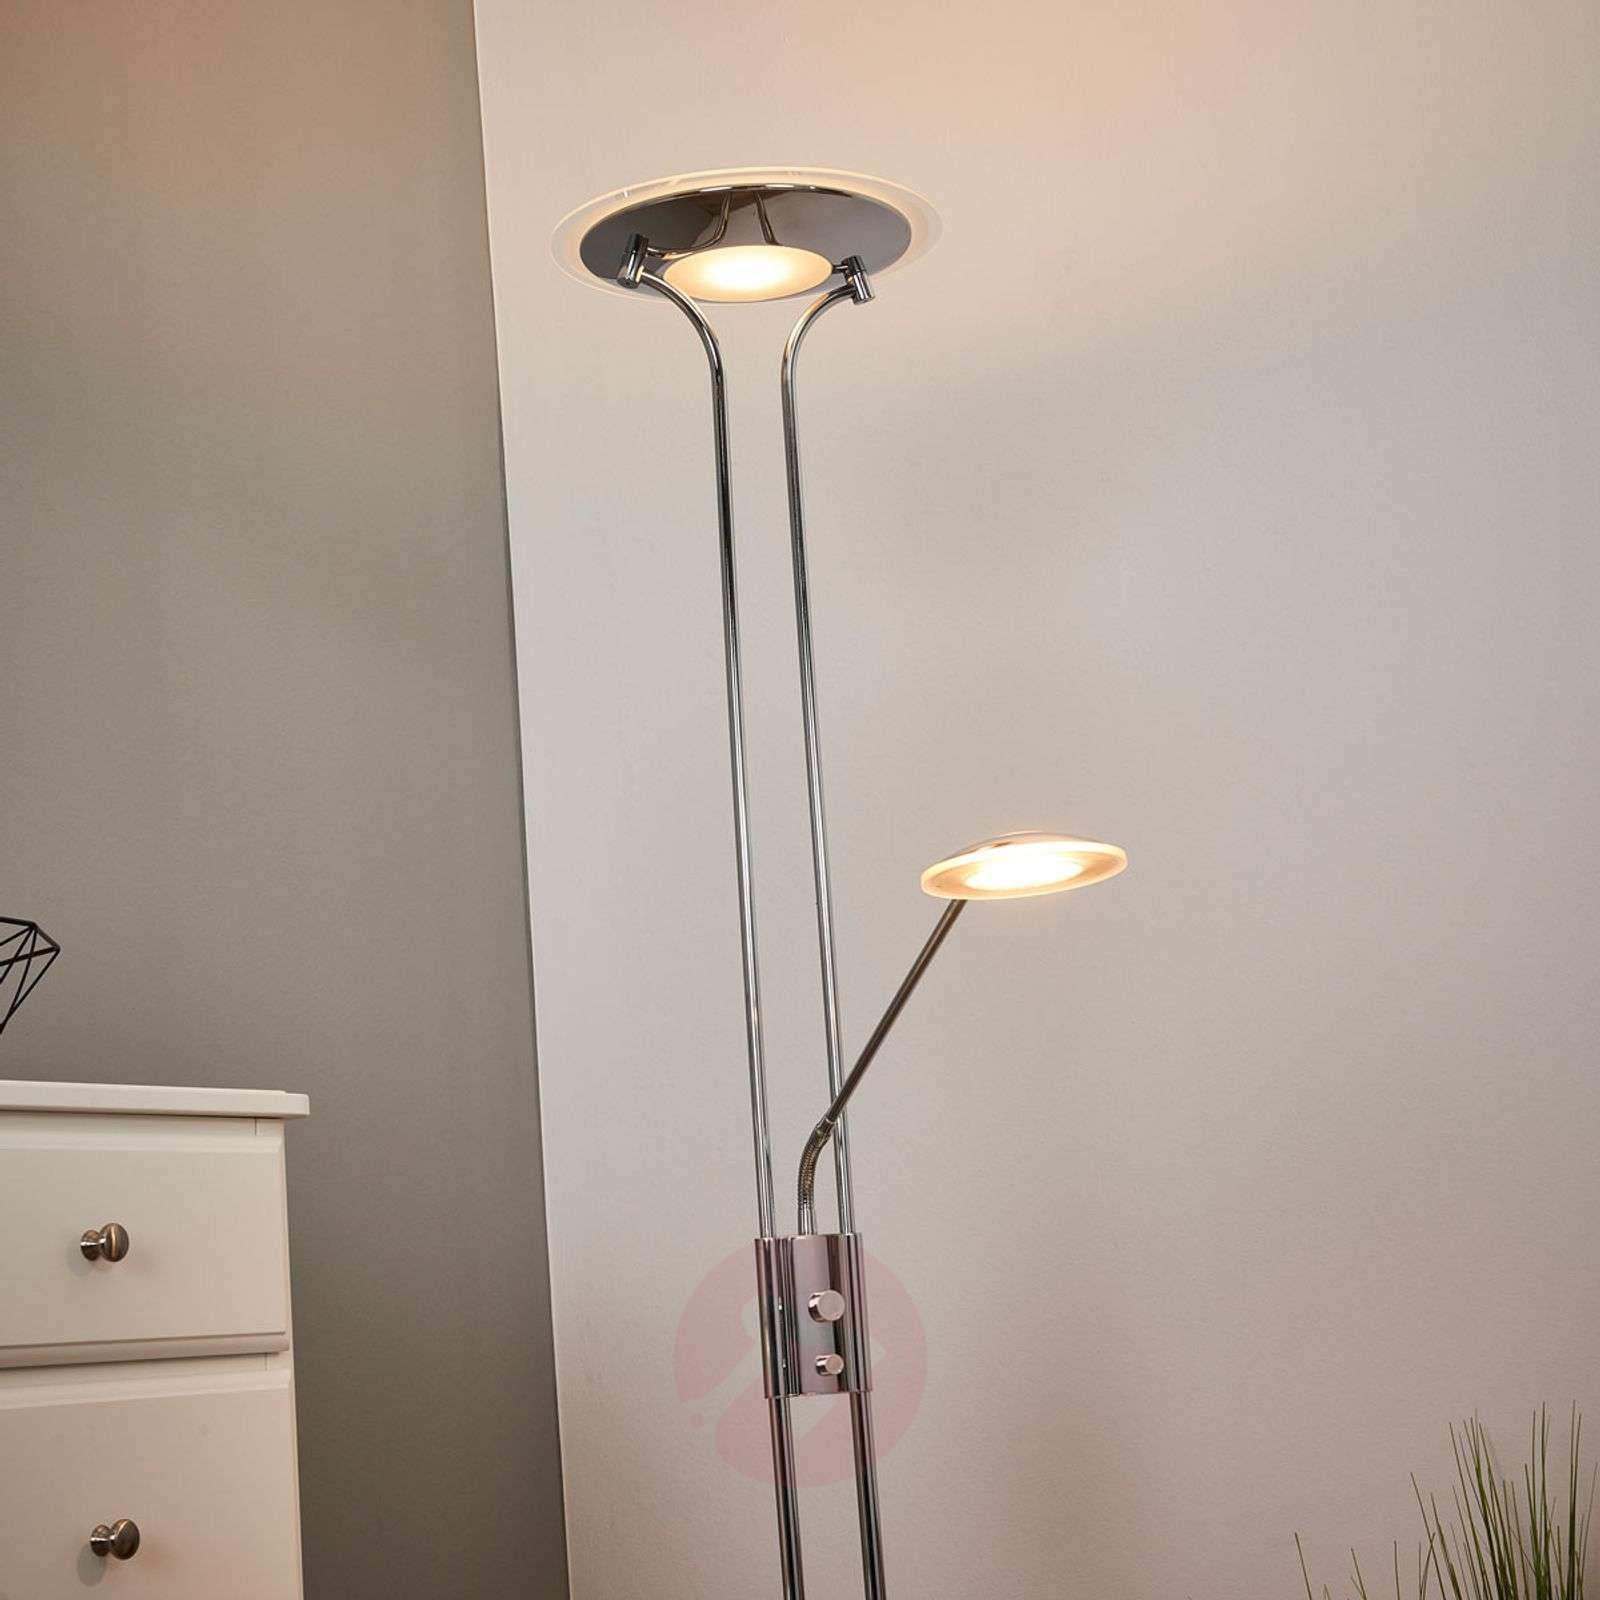 Lampa stojąca LED Aras z lampką do czytania, chrom-9945224-01